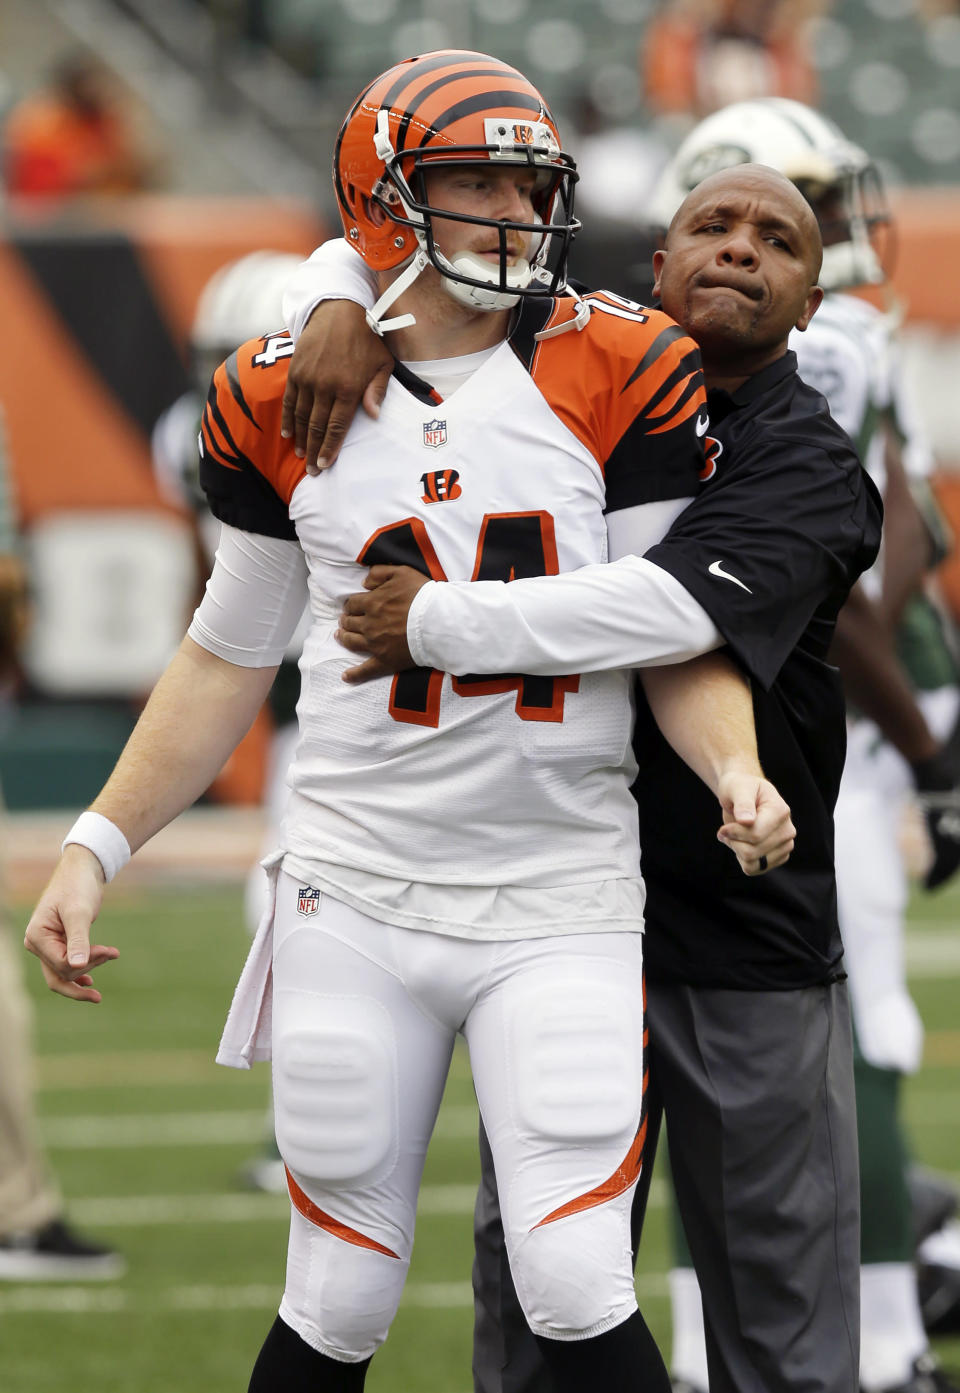 Dalton perfect, Jets rally to beat Bengals 25-17